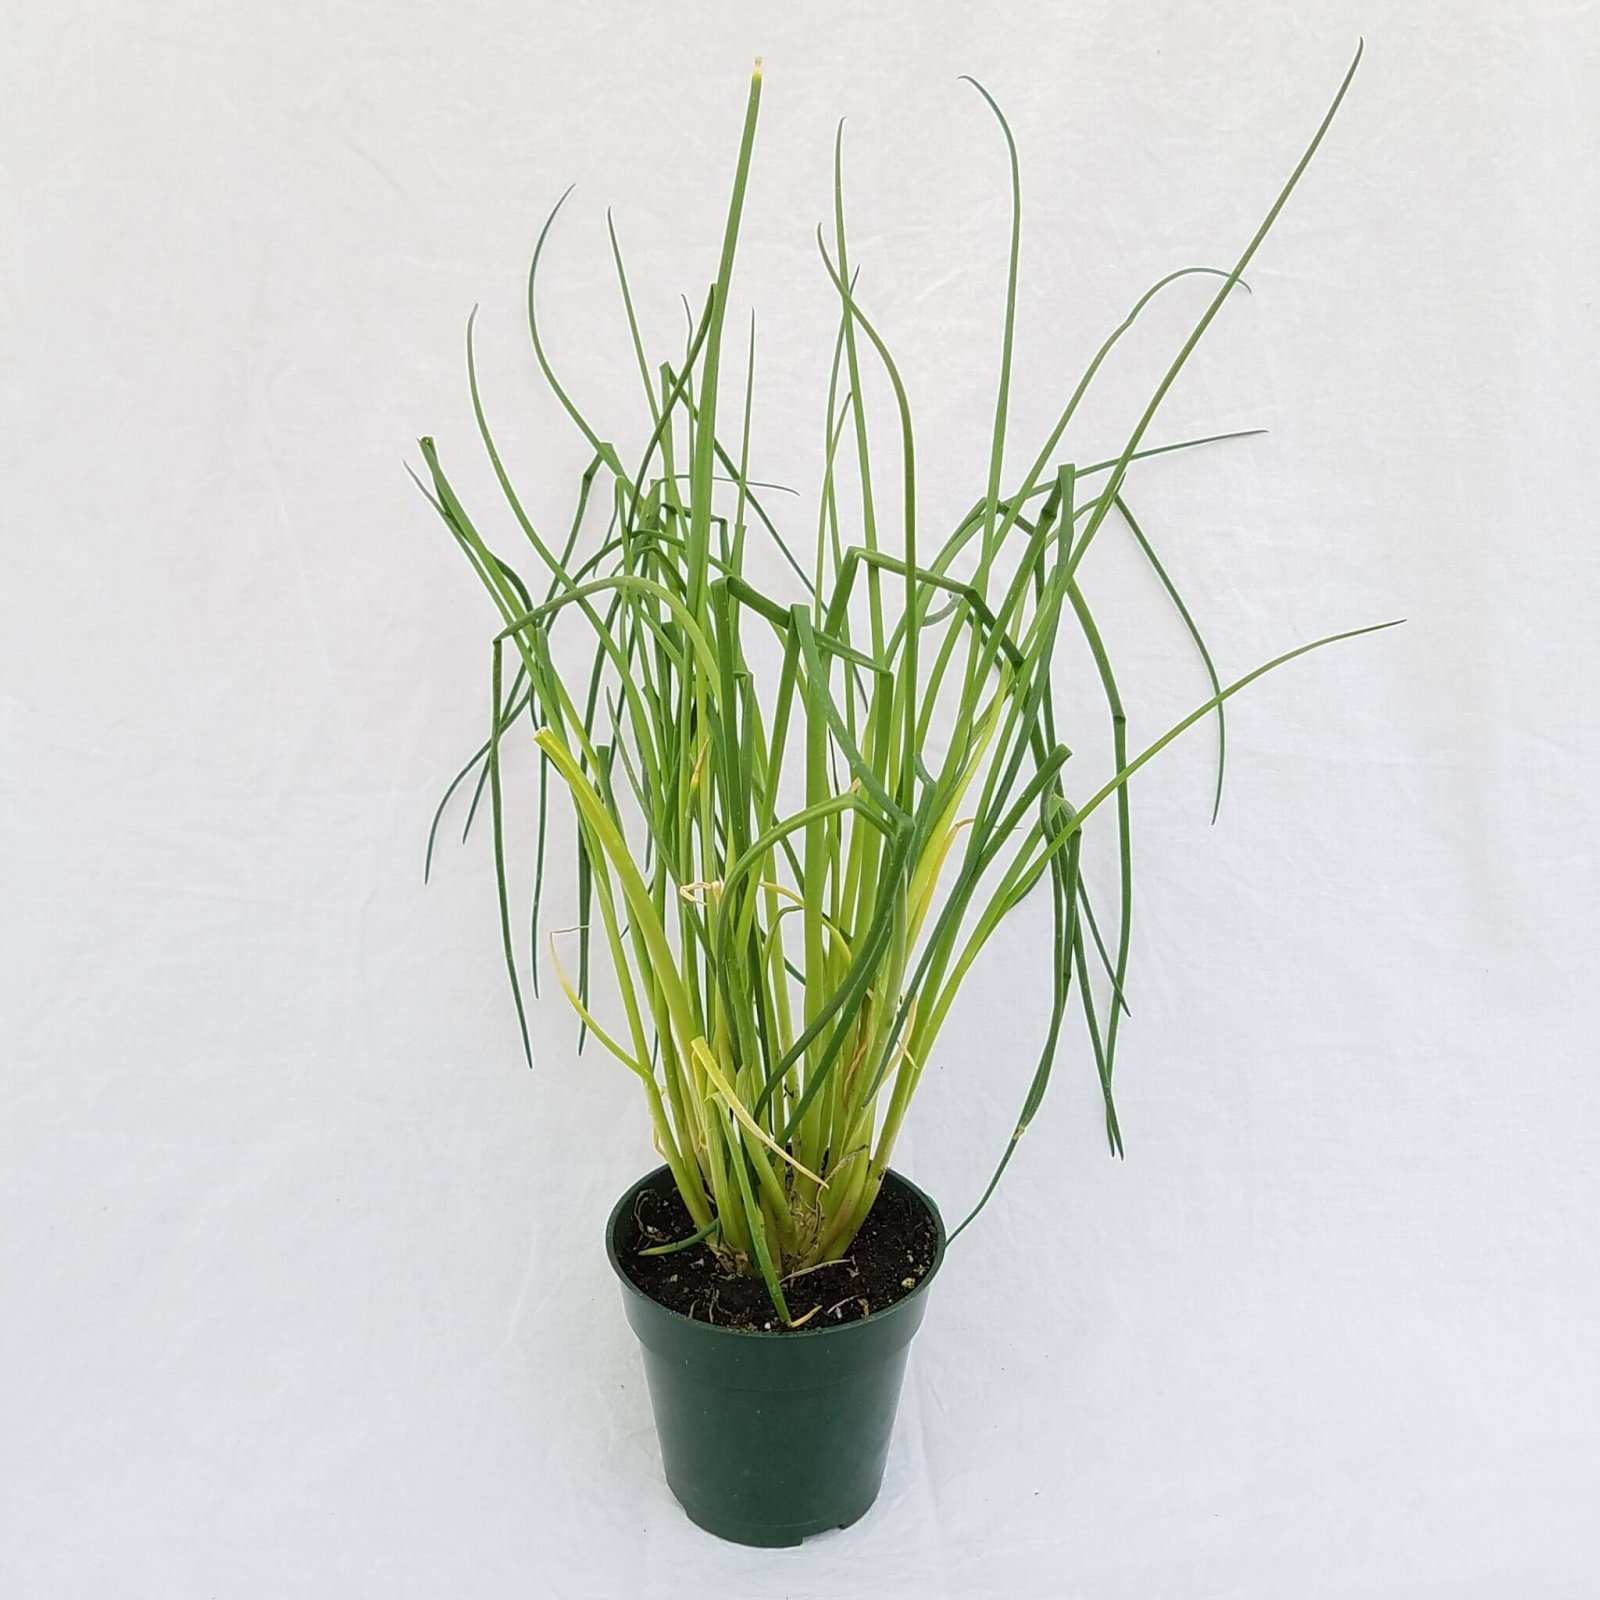 Chives 'Common' - 4 1/2